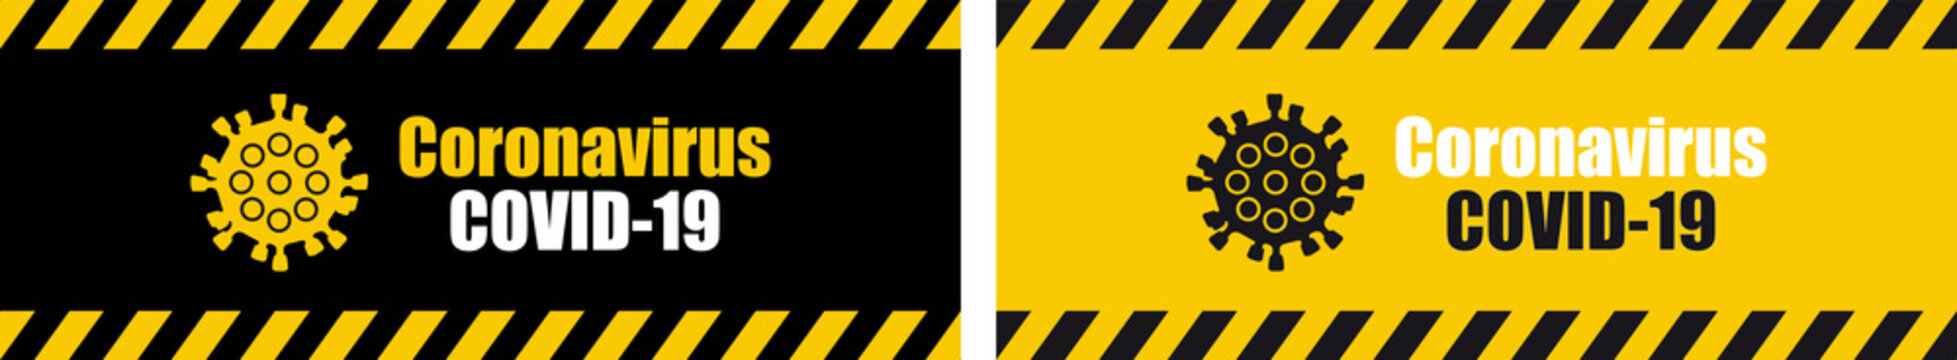 Warning coronavirus sign on banner